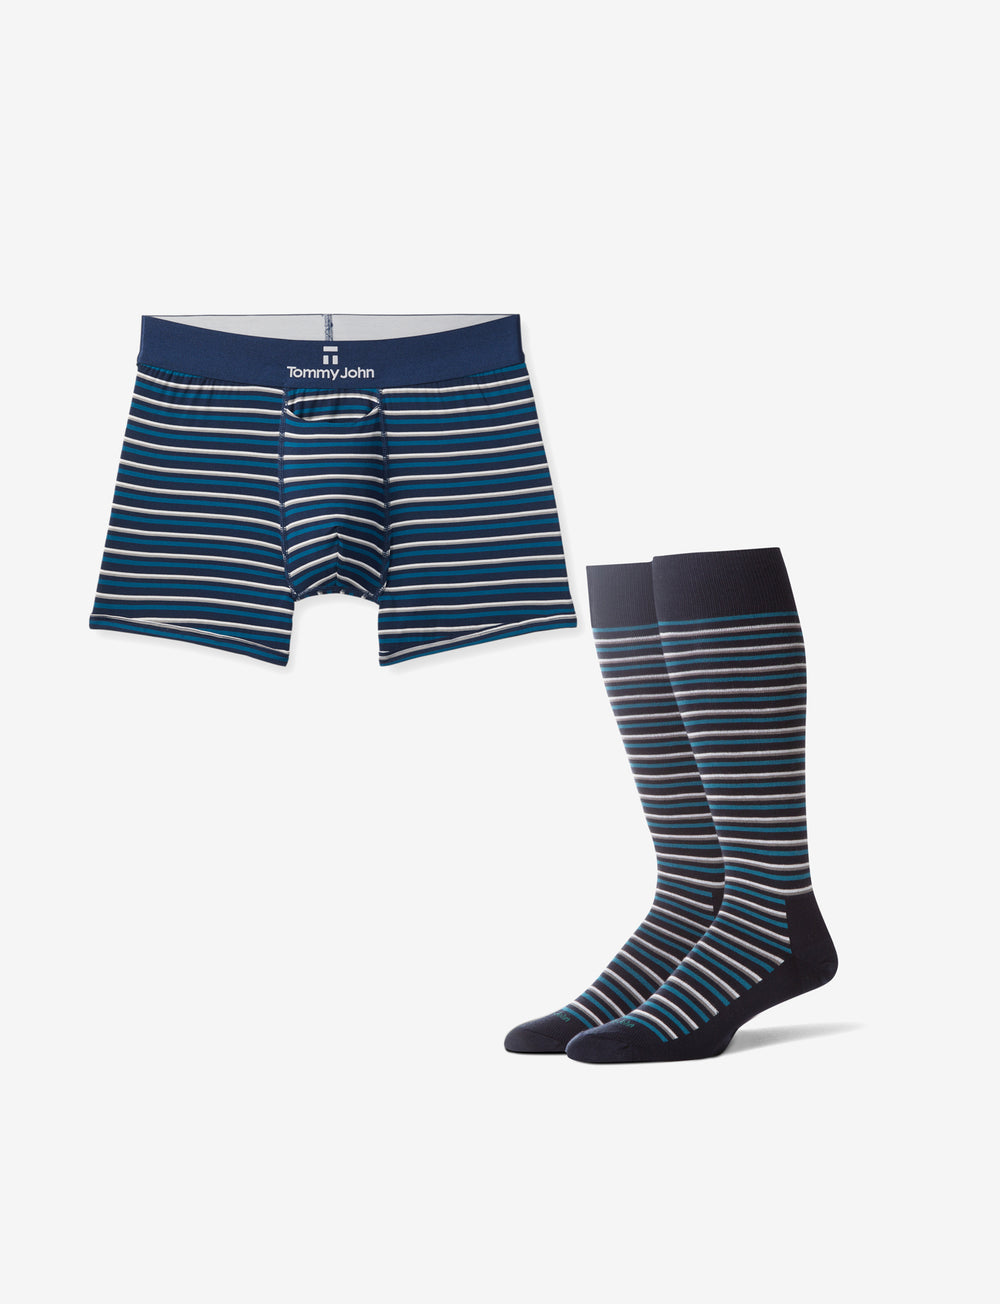 Men's Second Skin Ink Blue Slater Stripe Trunk & Sock Pack Details Image